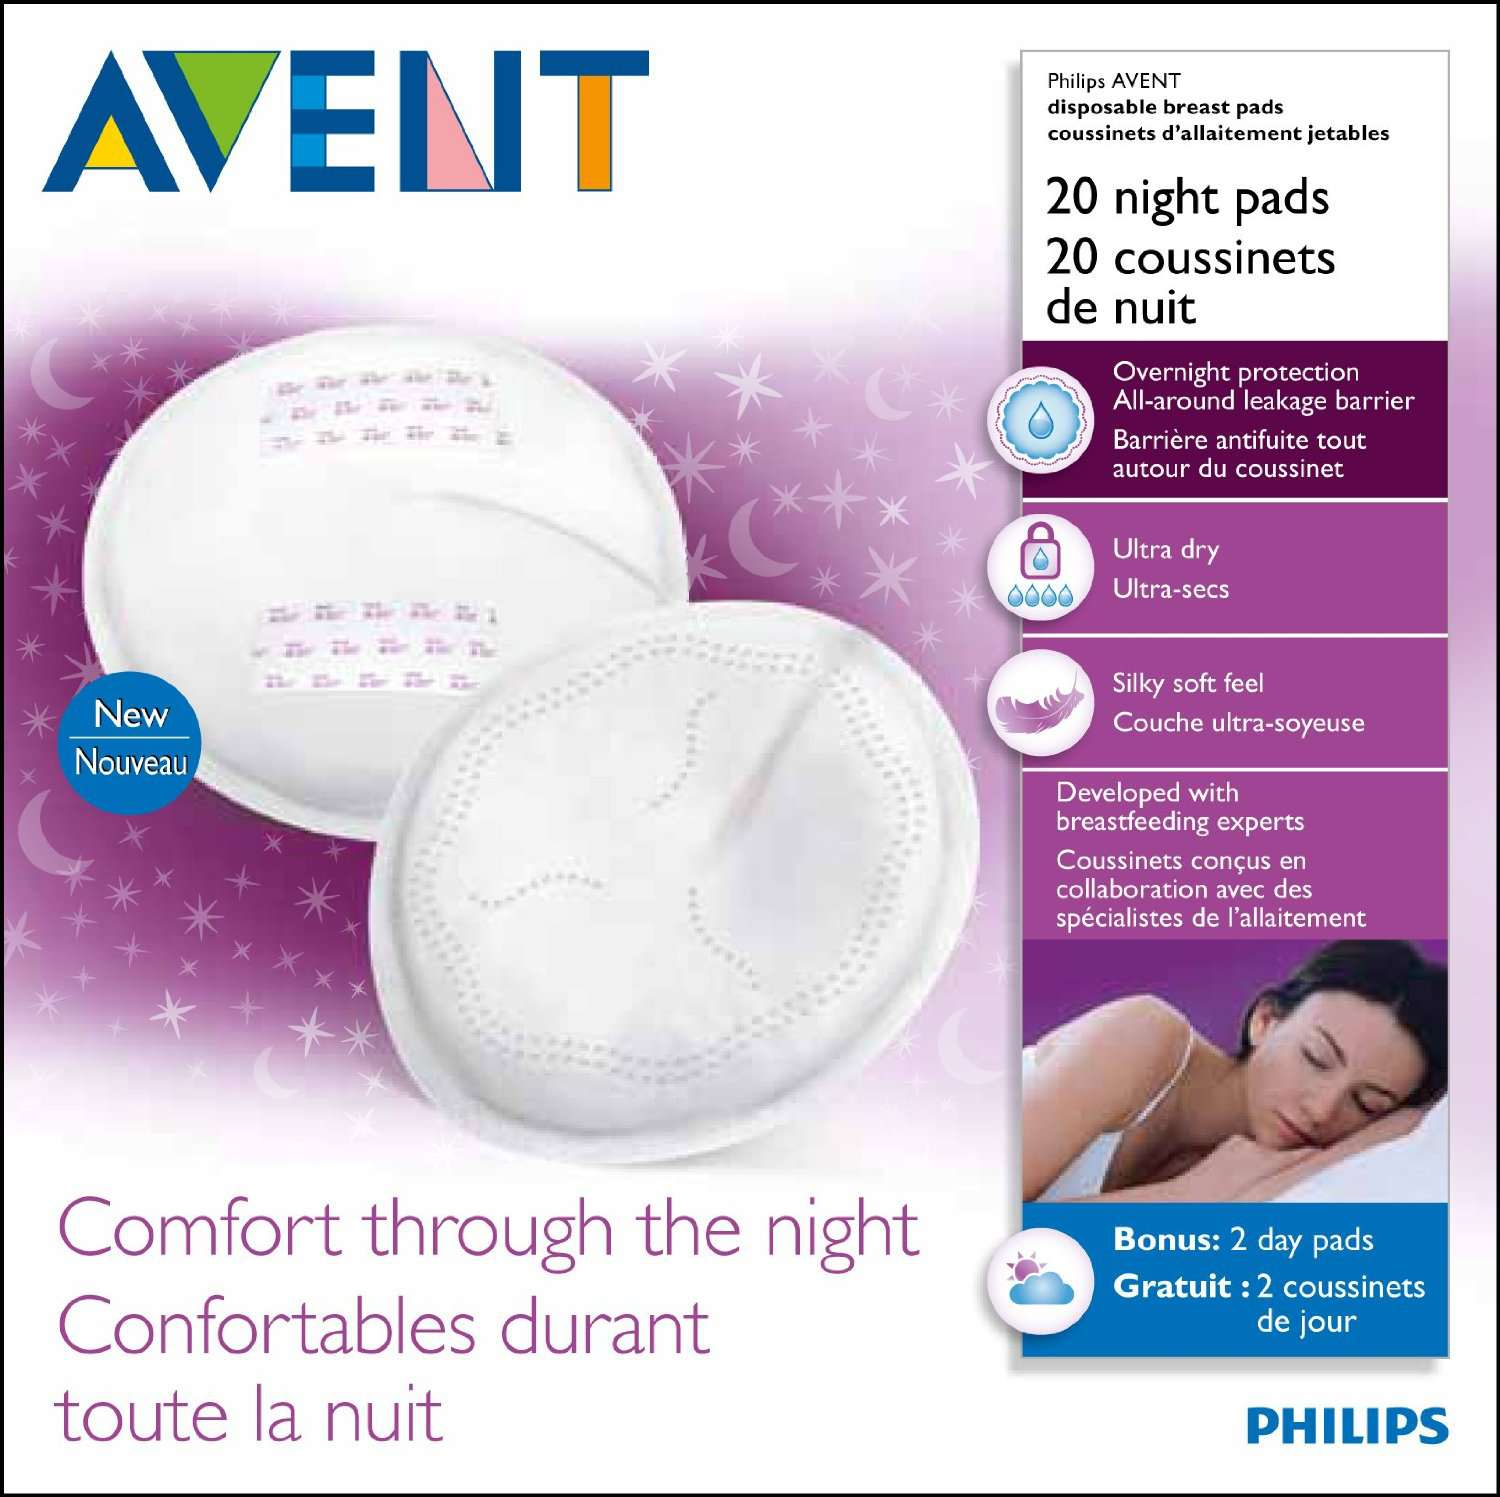 f57ba6b80dc Philips AVENT Disposable Breast Pads Night Pads